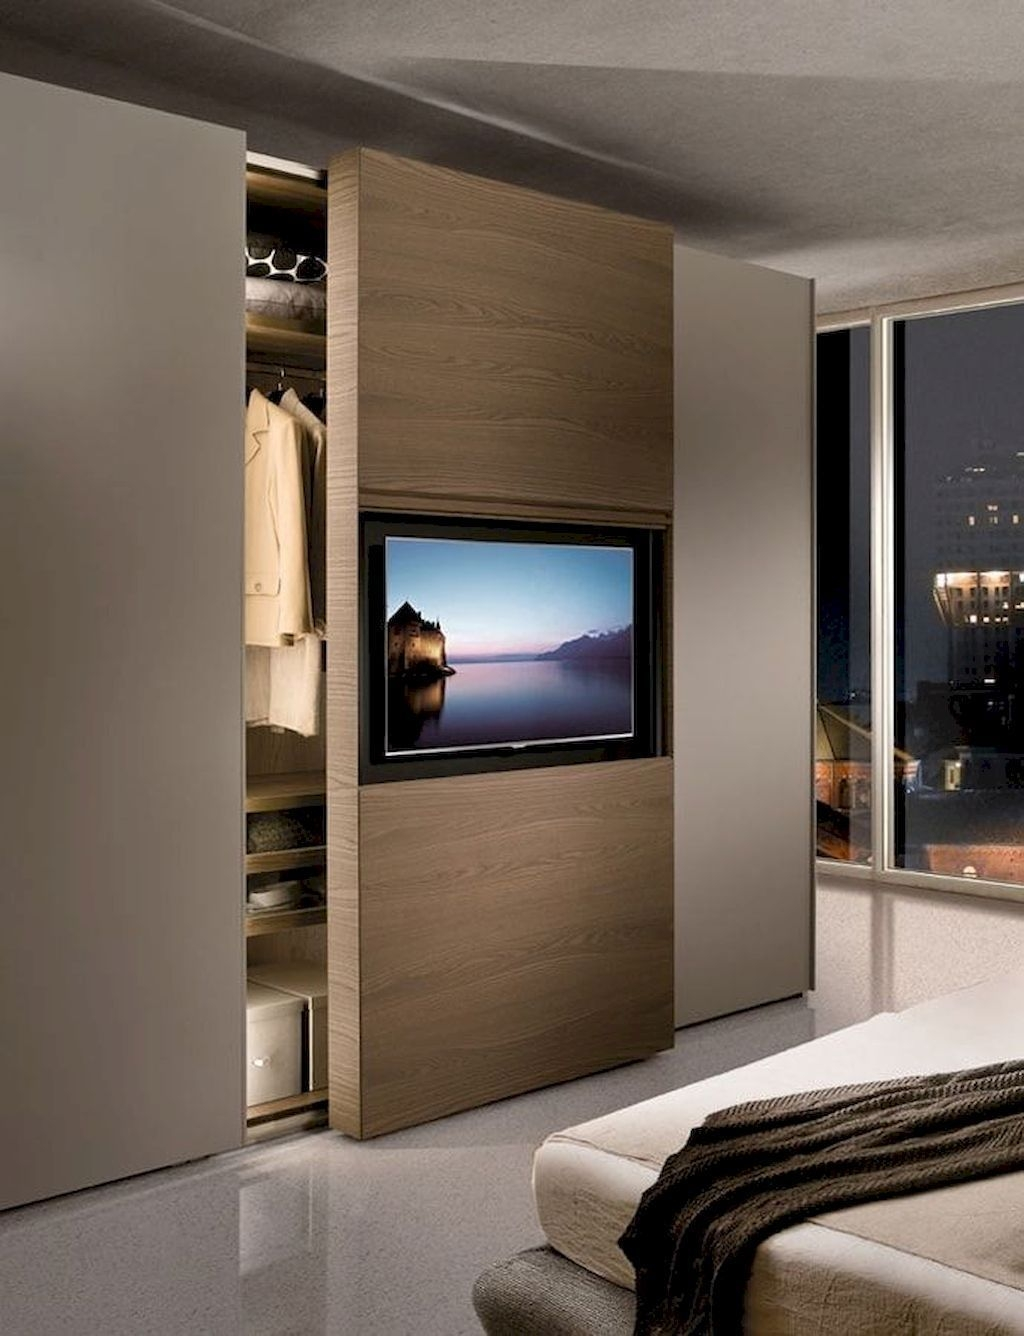 Marvelous Bedroom Cabinet Design Ideas For Your Home Inspiration 17